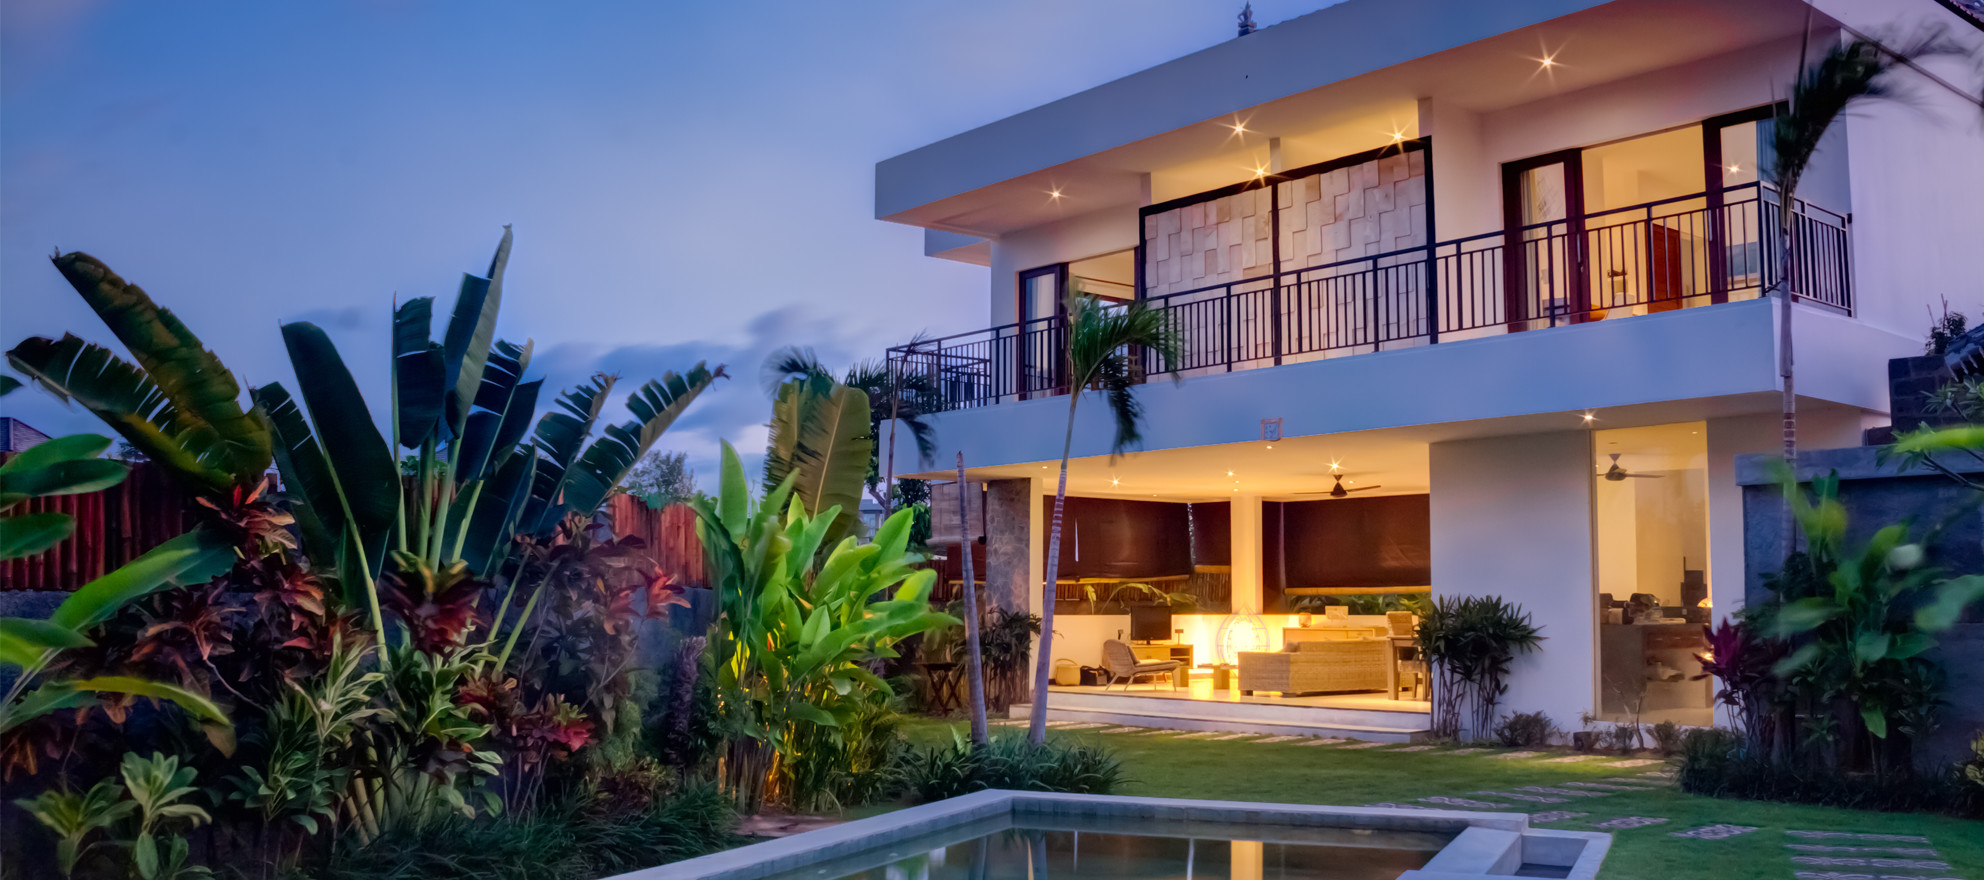 LA real estate broker launches luxury home bidding platform, plumBid